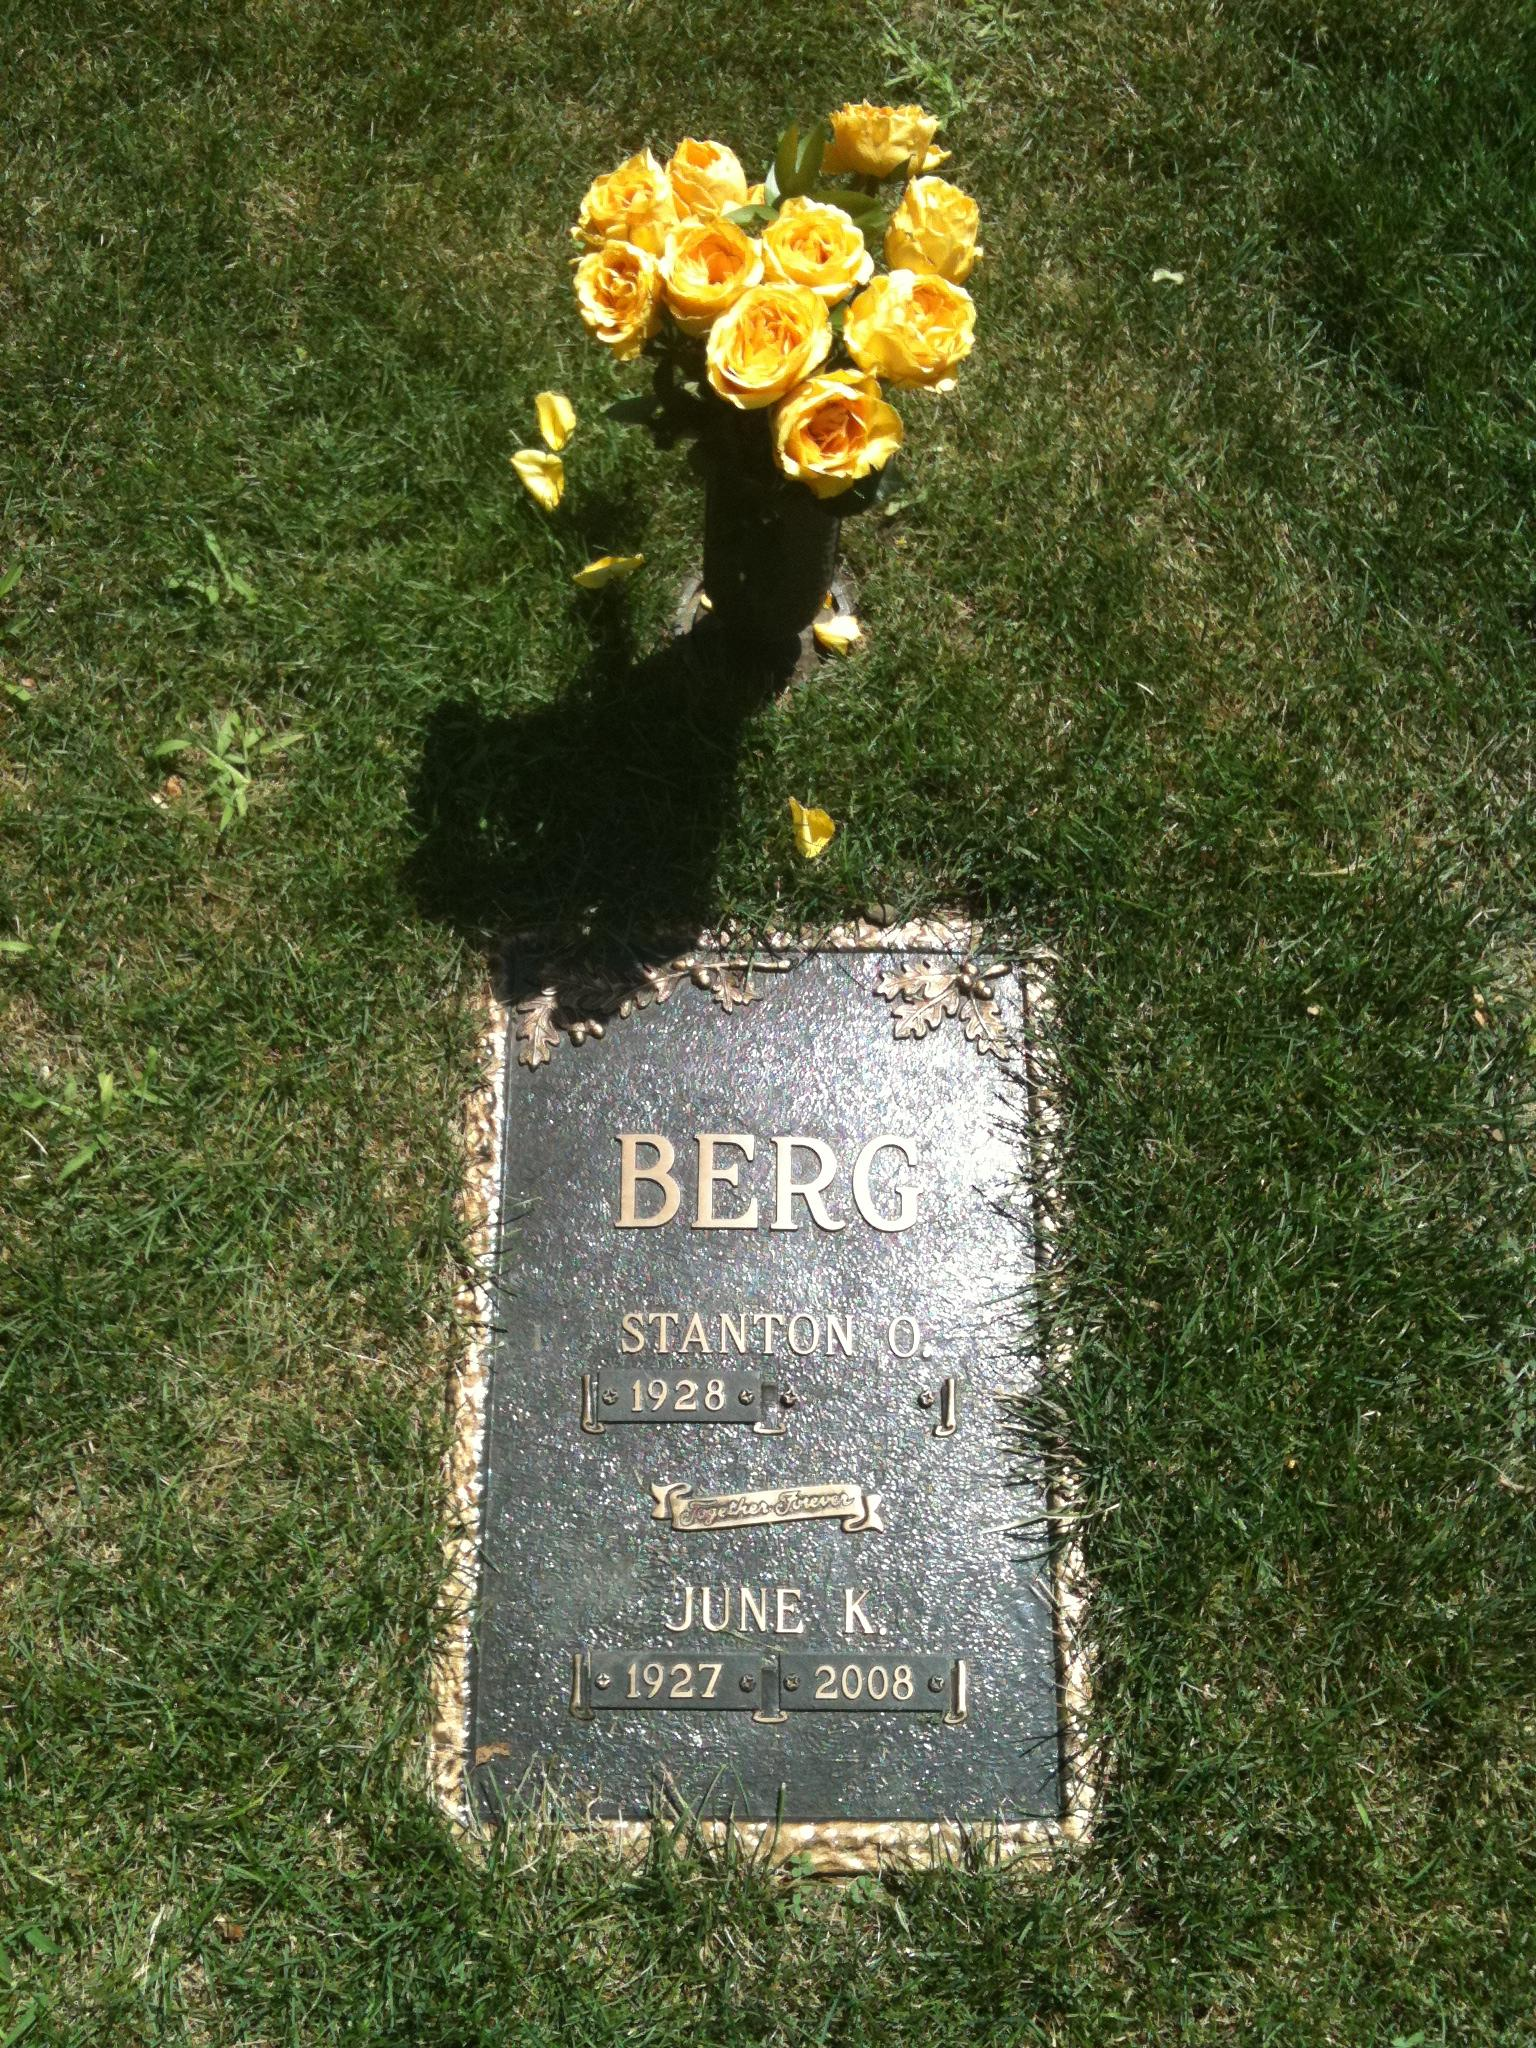 June's Grave marker with flowers